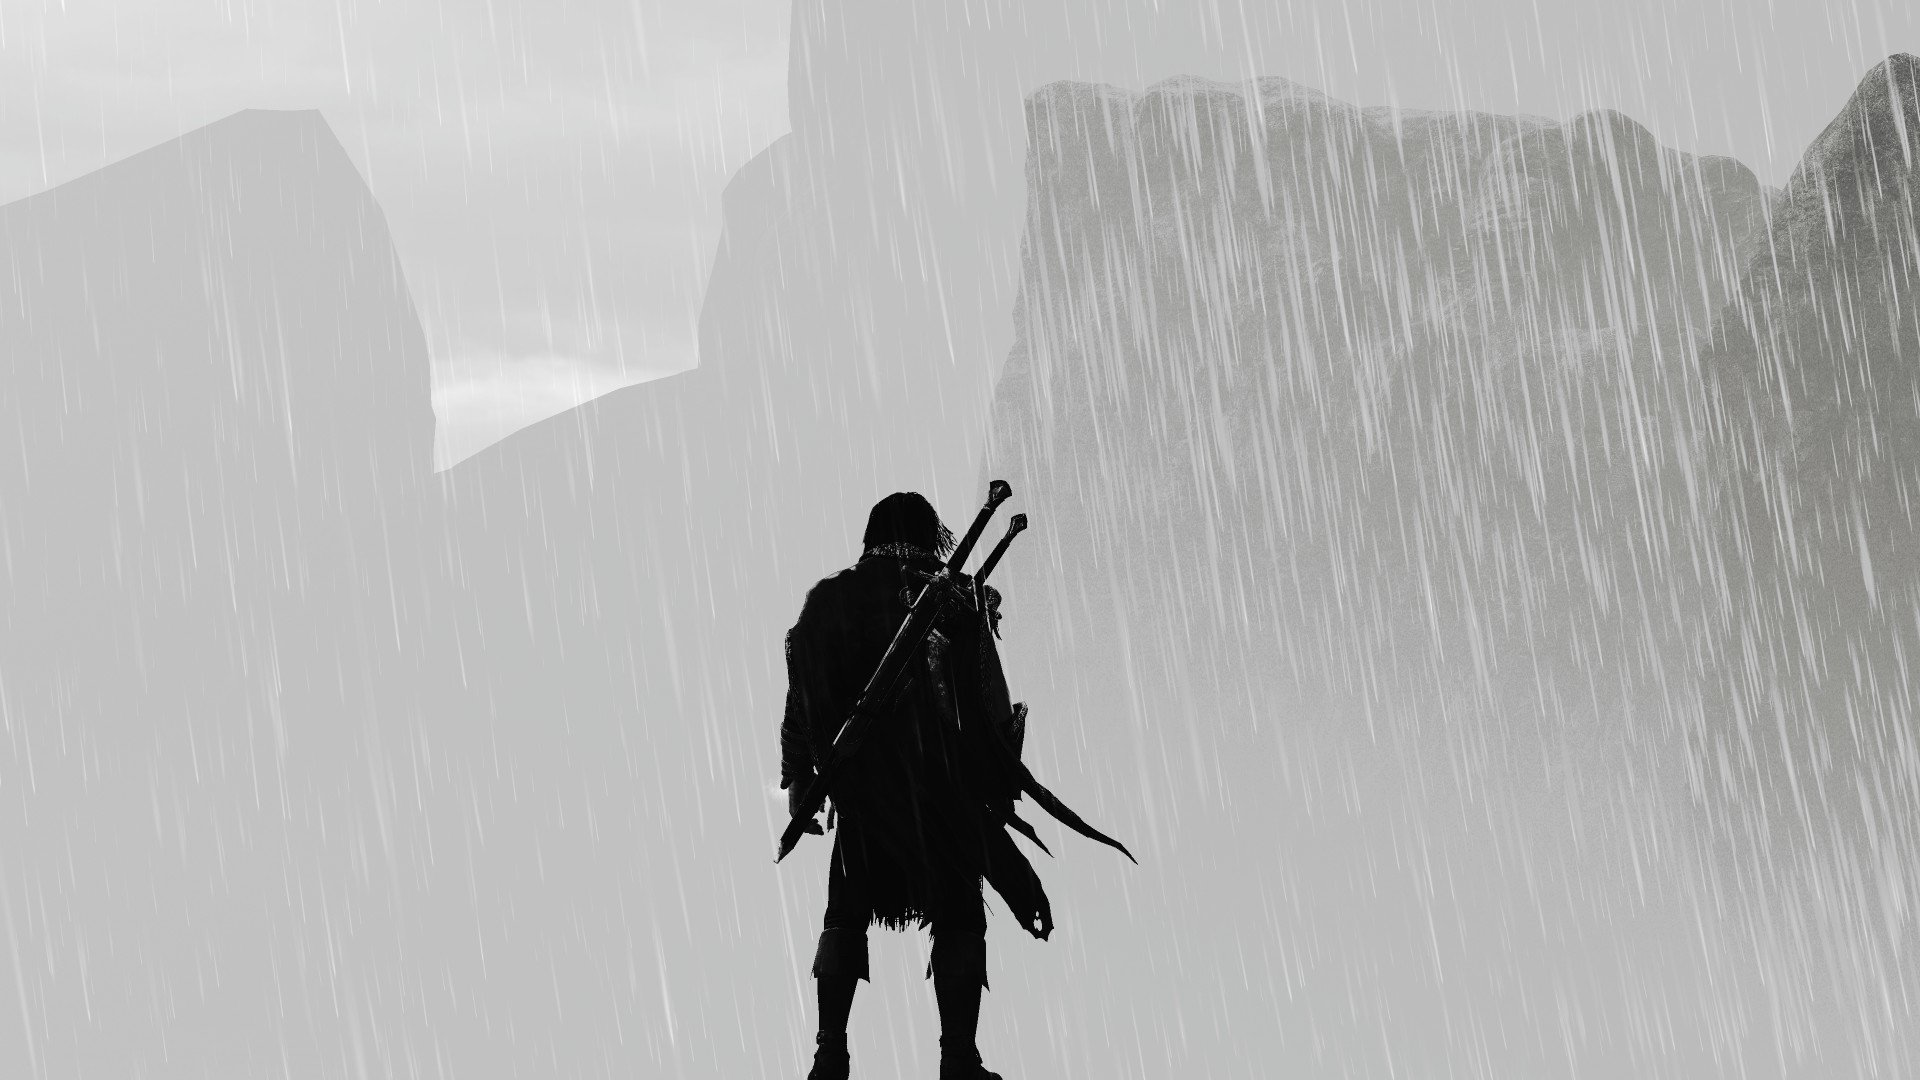 Video Game - Middle-earth: Shadow of Mordor  Wallpaper